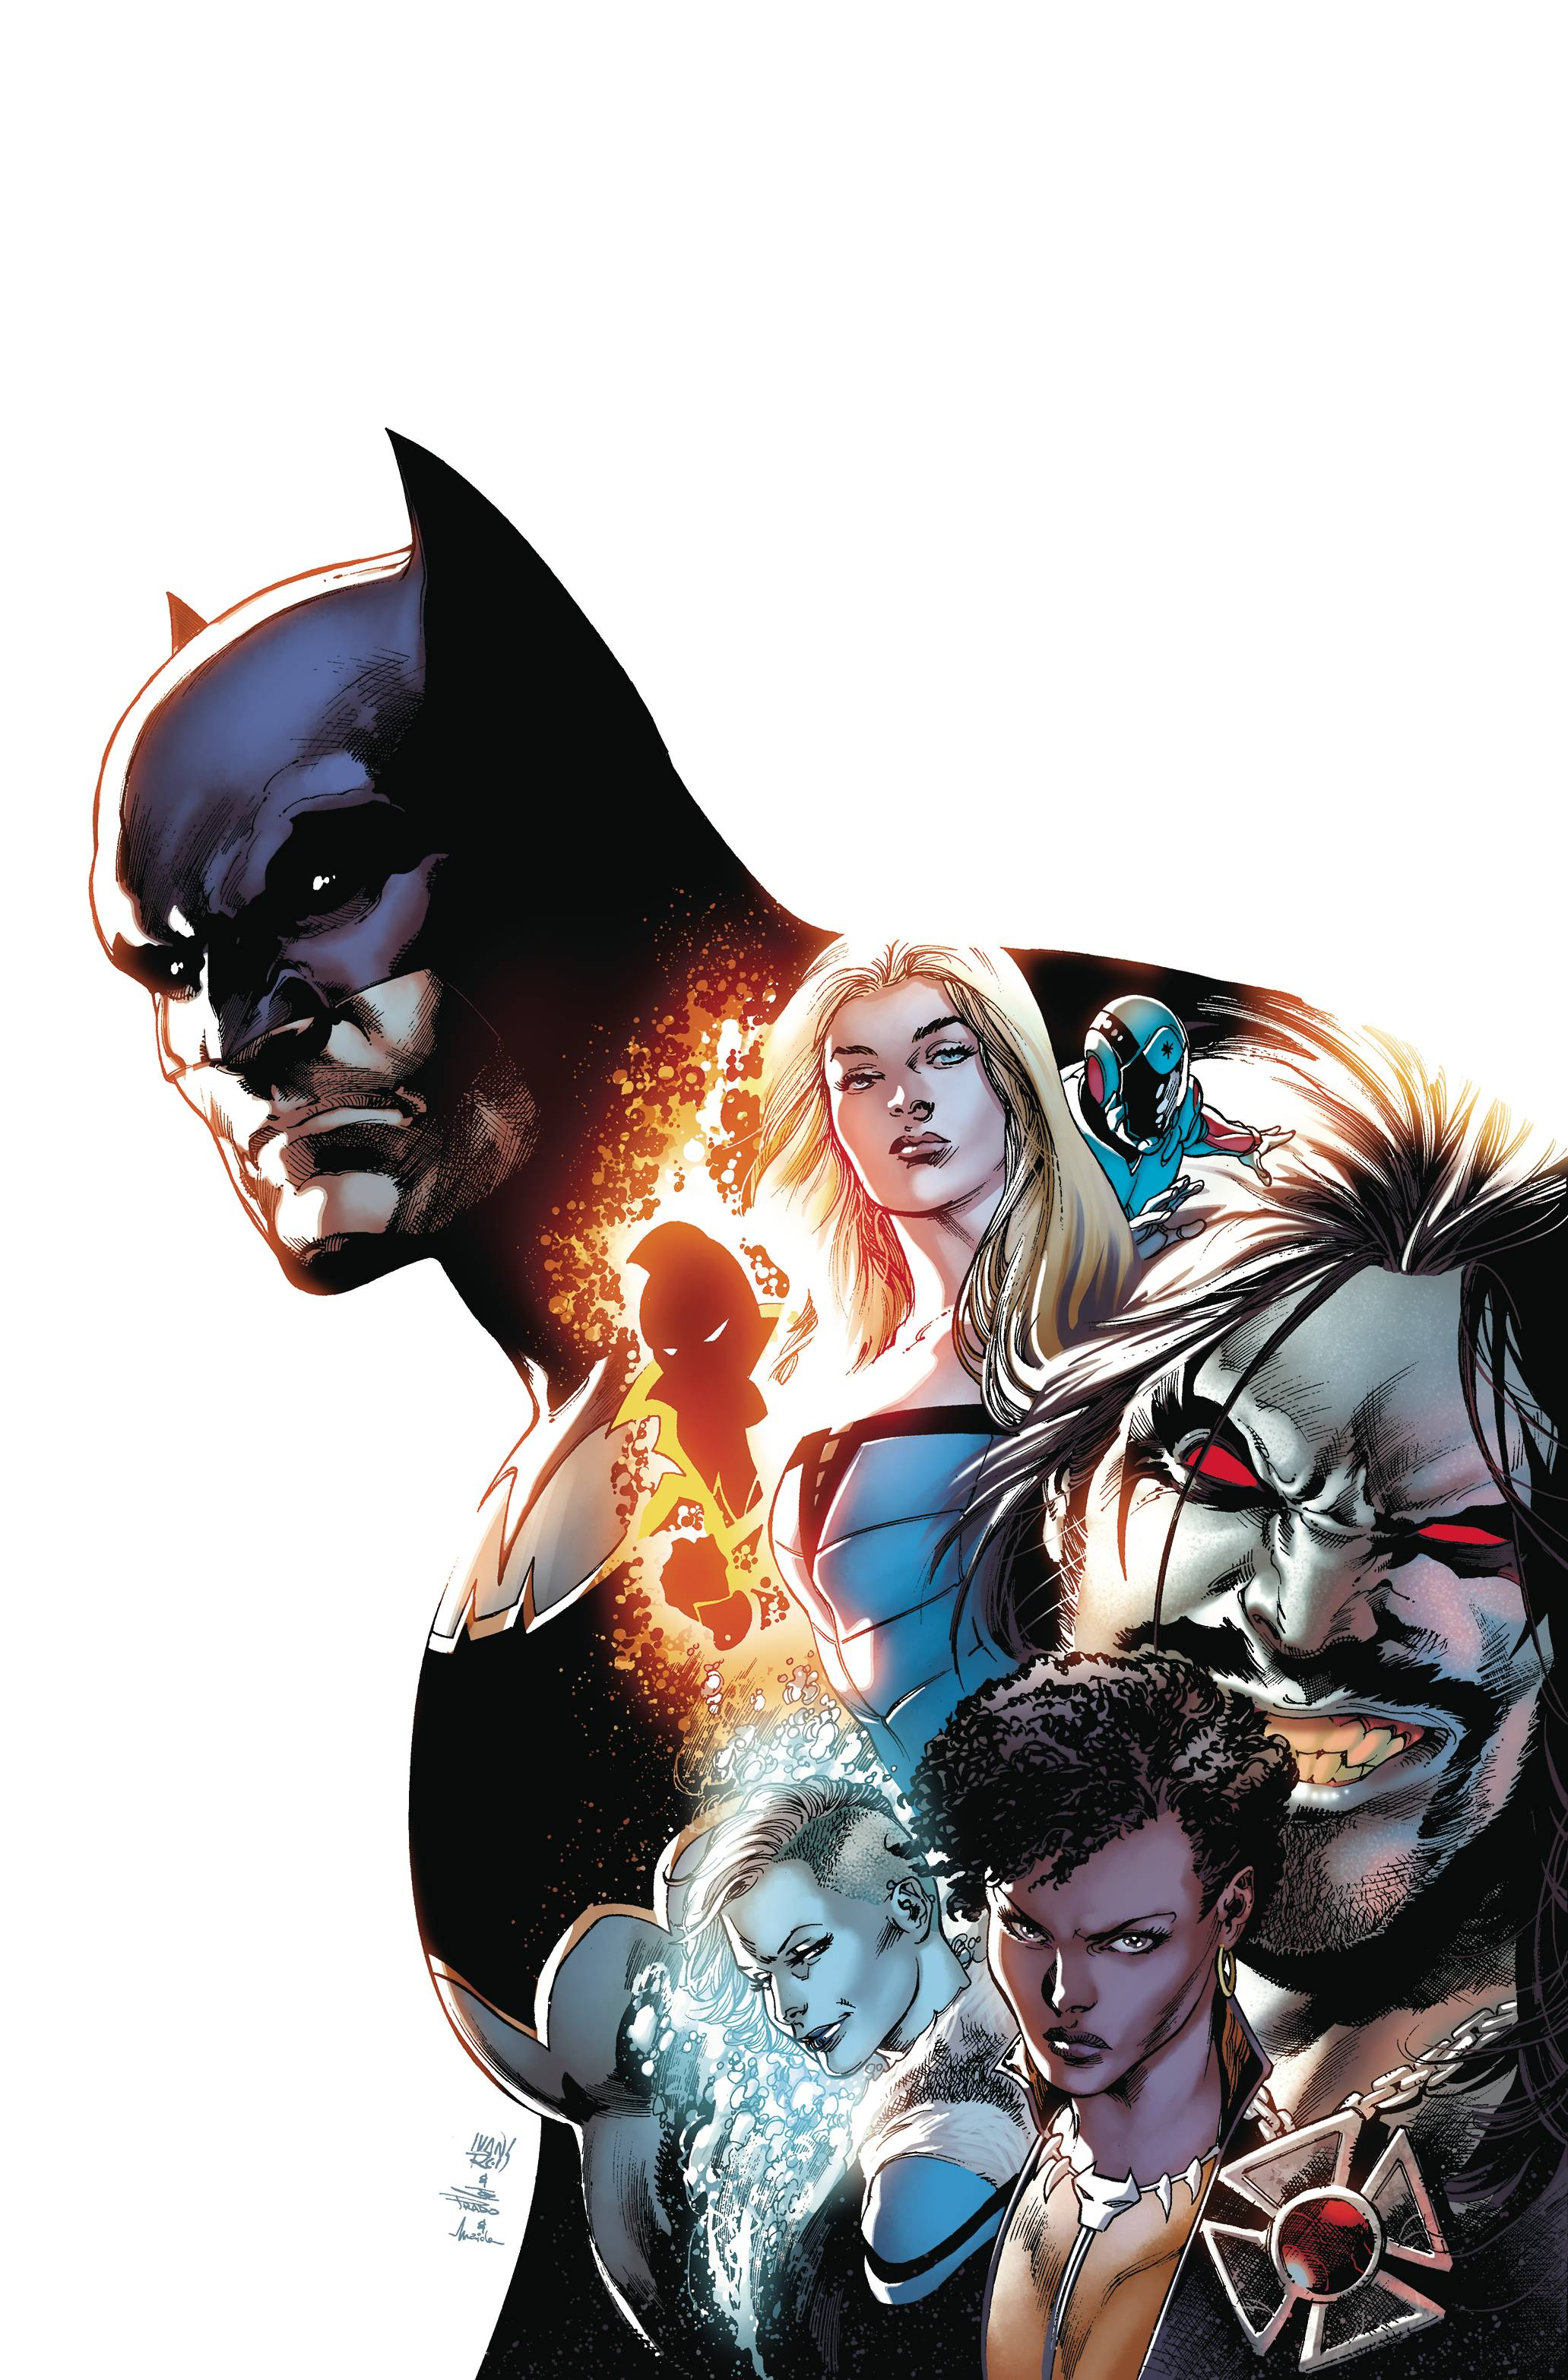 JUSTICE LEAGUE OF AMERICA REBIRTH #1